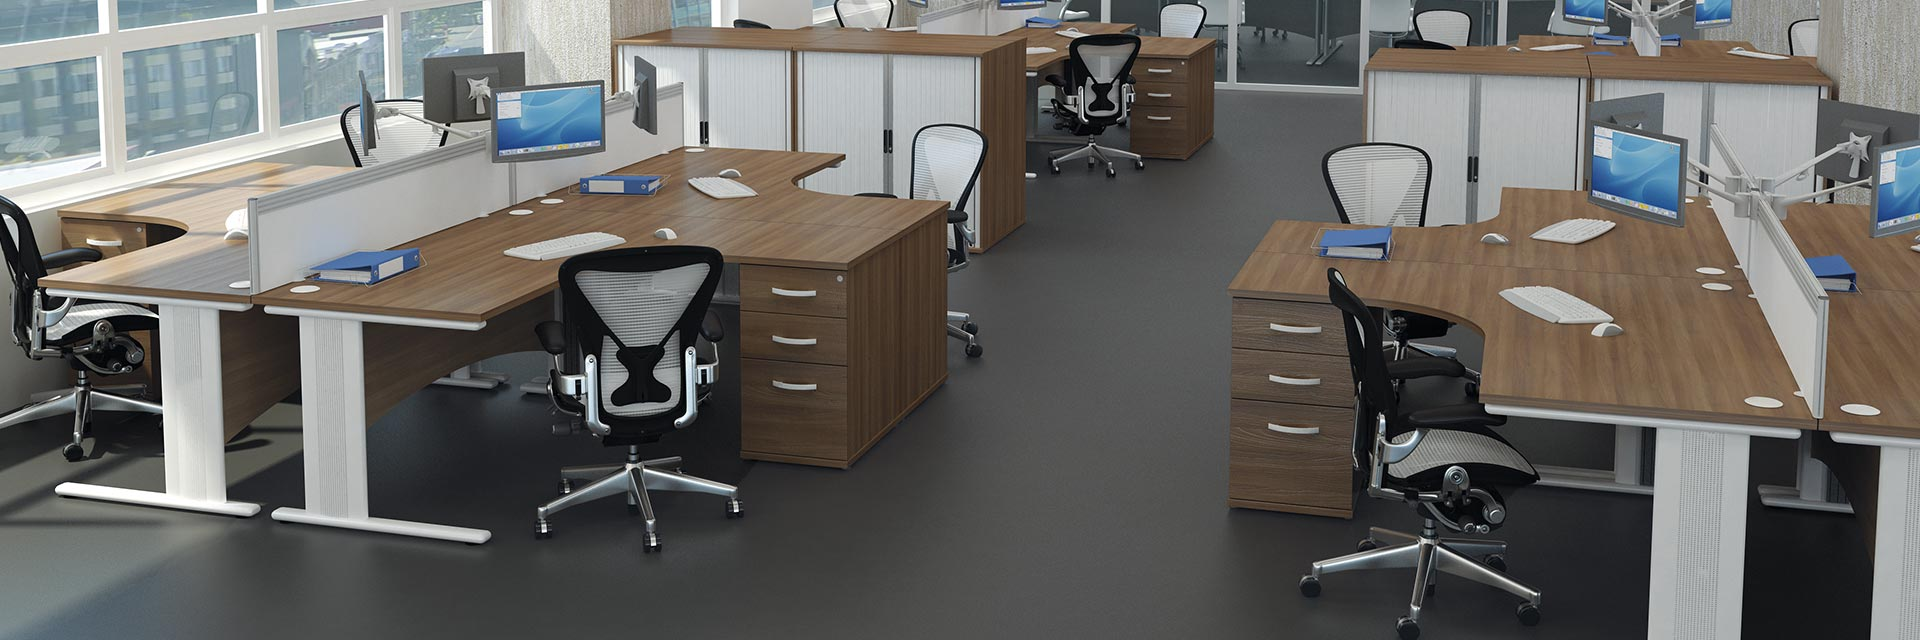 We Can Help Plan Your Perfect Office